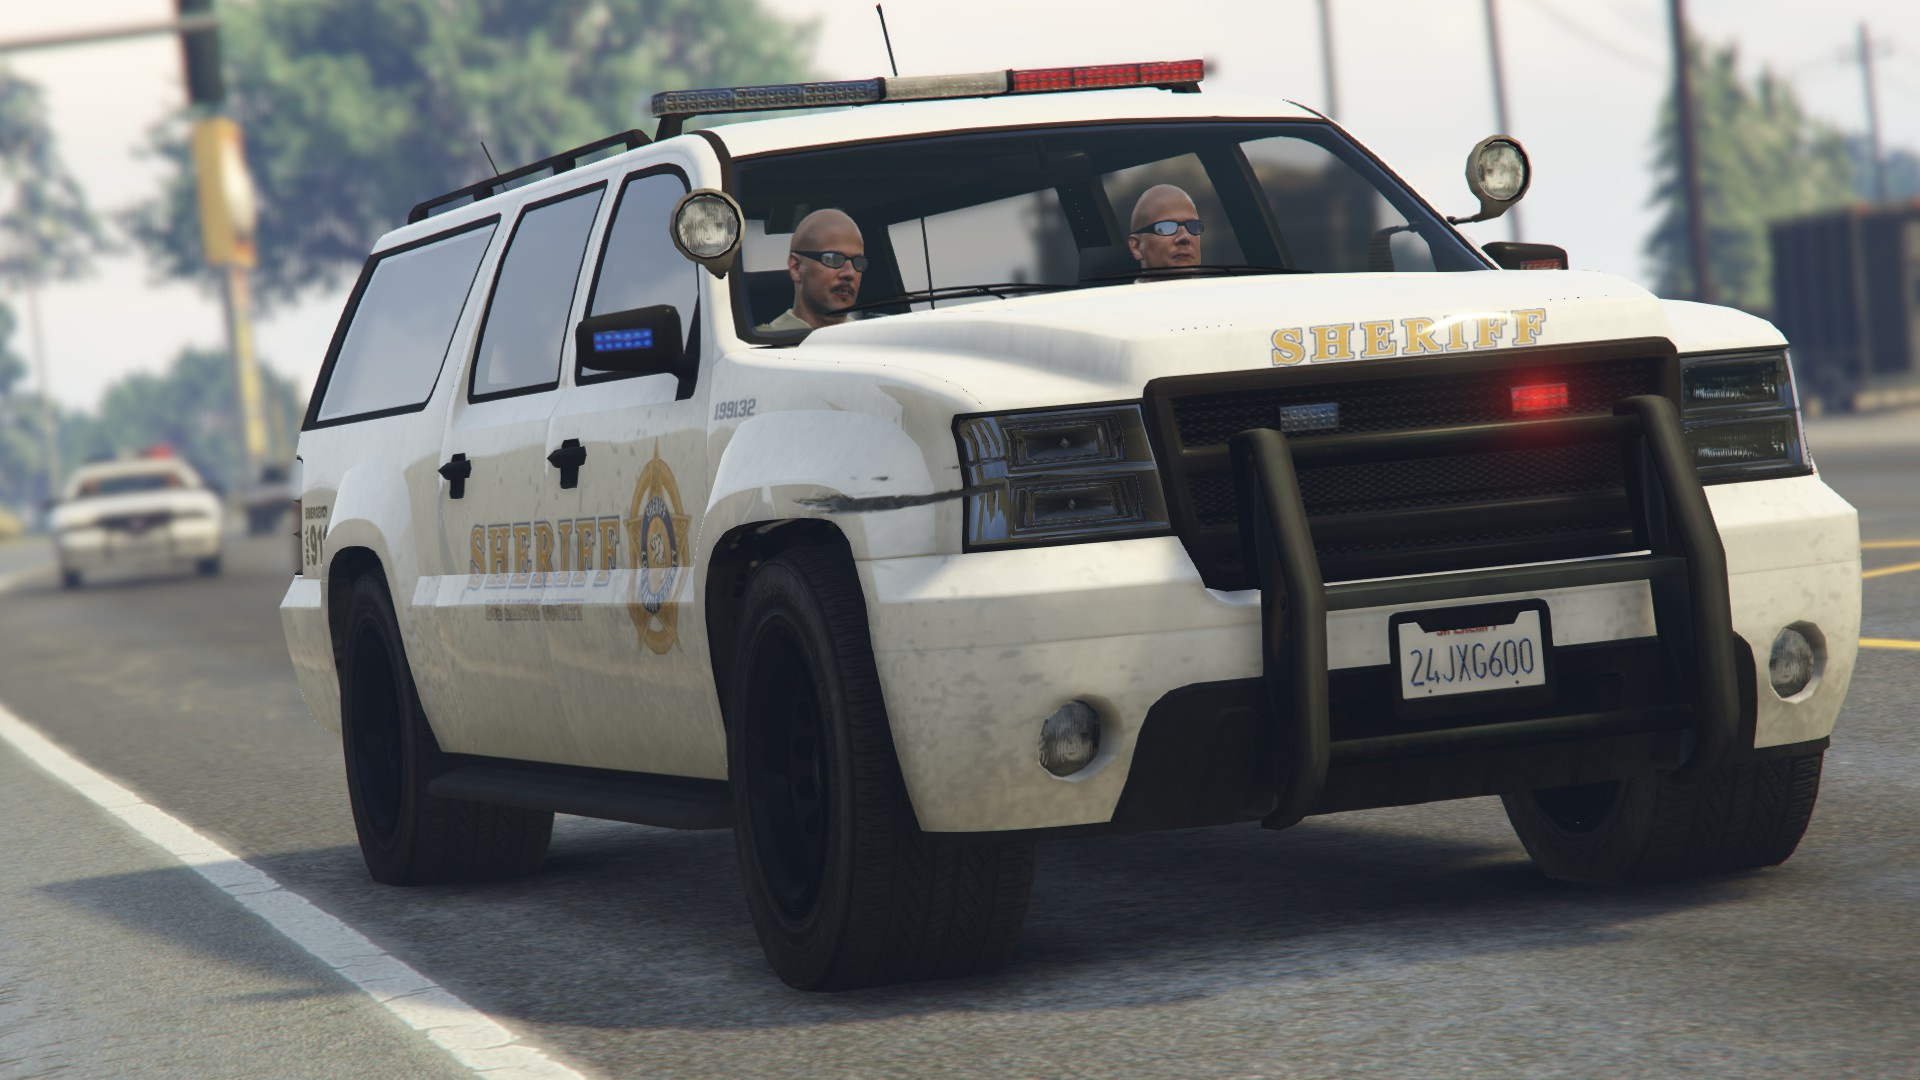 D Screenshots likewise Blogger Image additionally Bull Dozer Spawn besides  additionally Maxresdefault. on gta 5 cheats ps3 police car